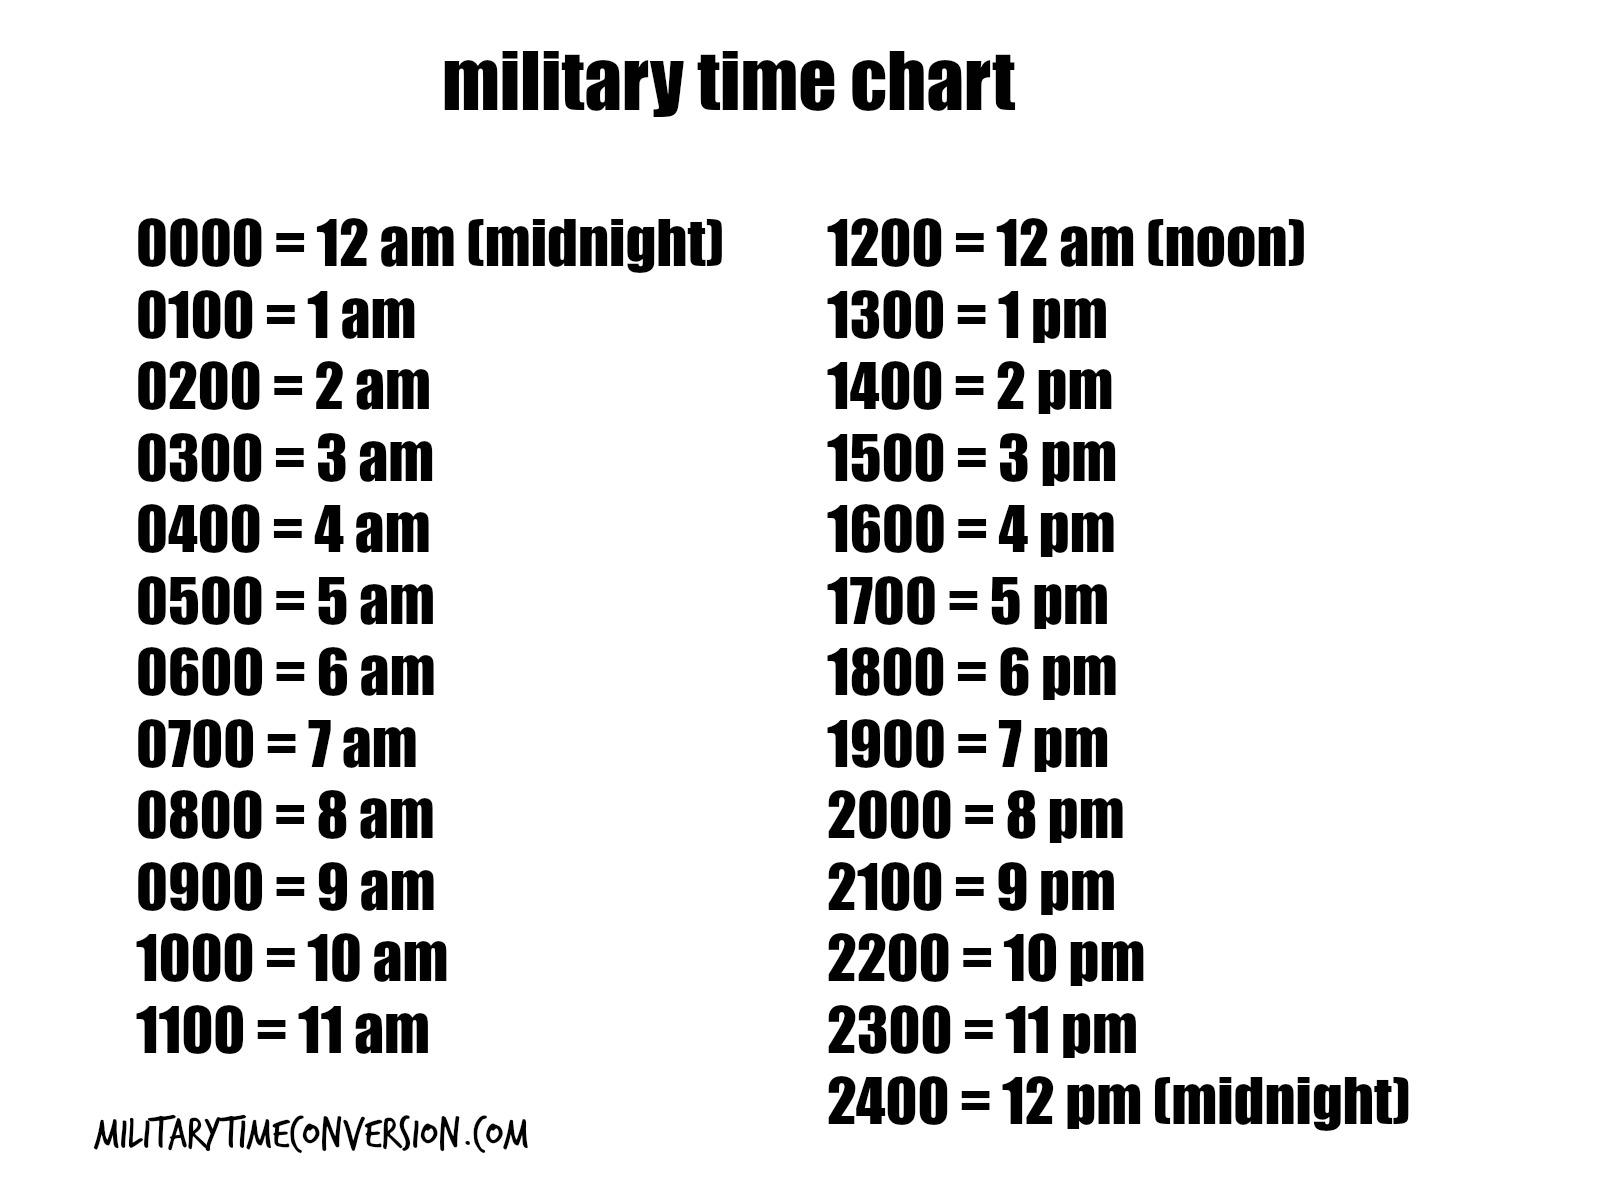 Military time charteg time zones quickly and easily if you use the famous 24 hour clock format stopping the madness that many times surrounds a 12 hour clock format is nvjuhfo Gallery